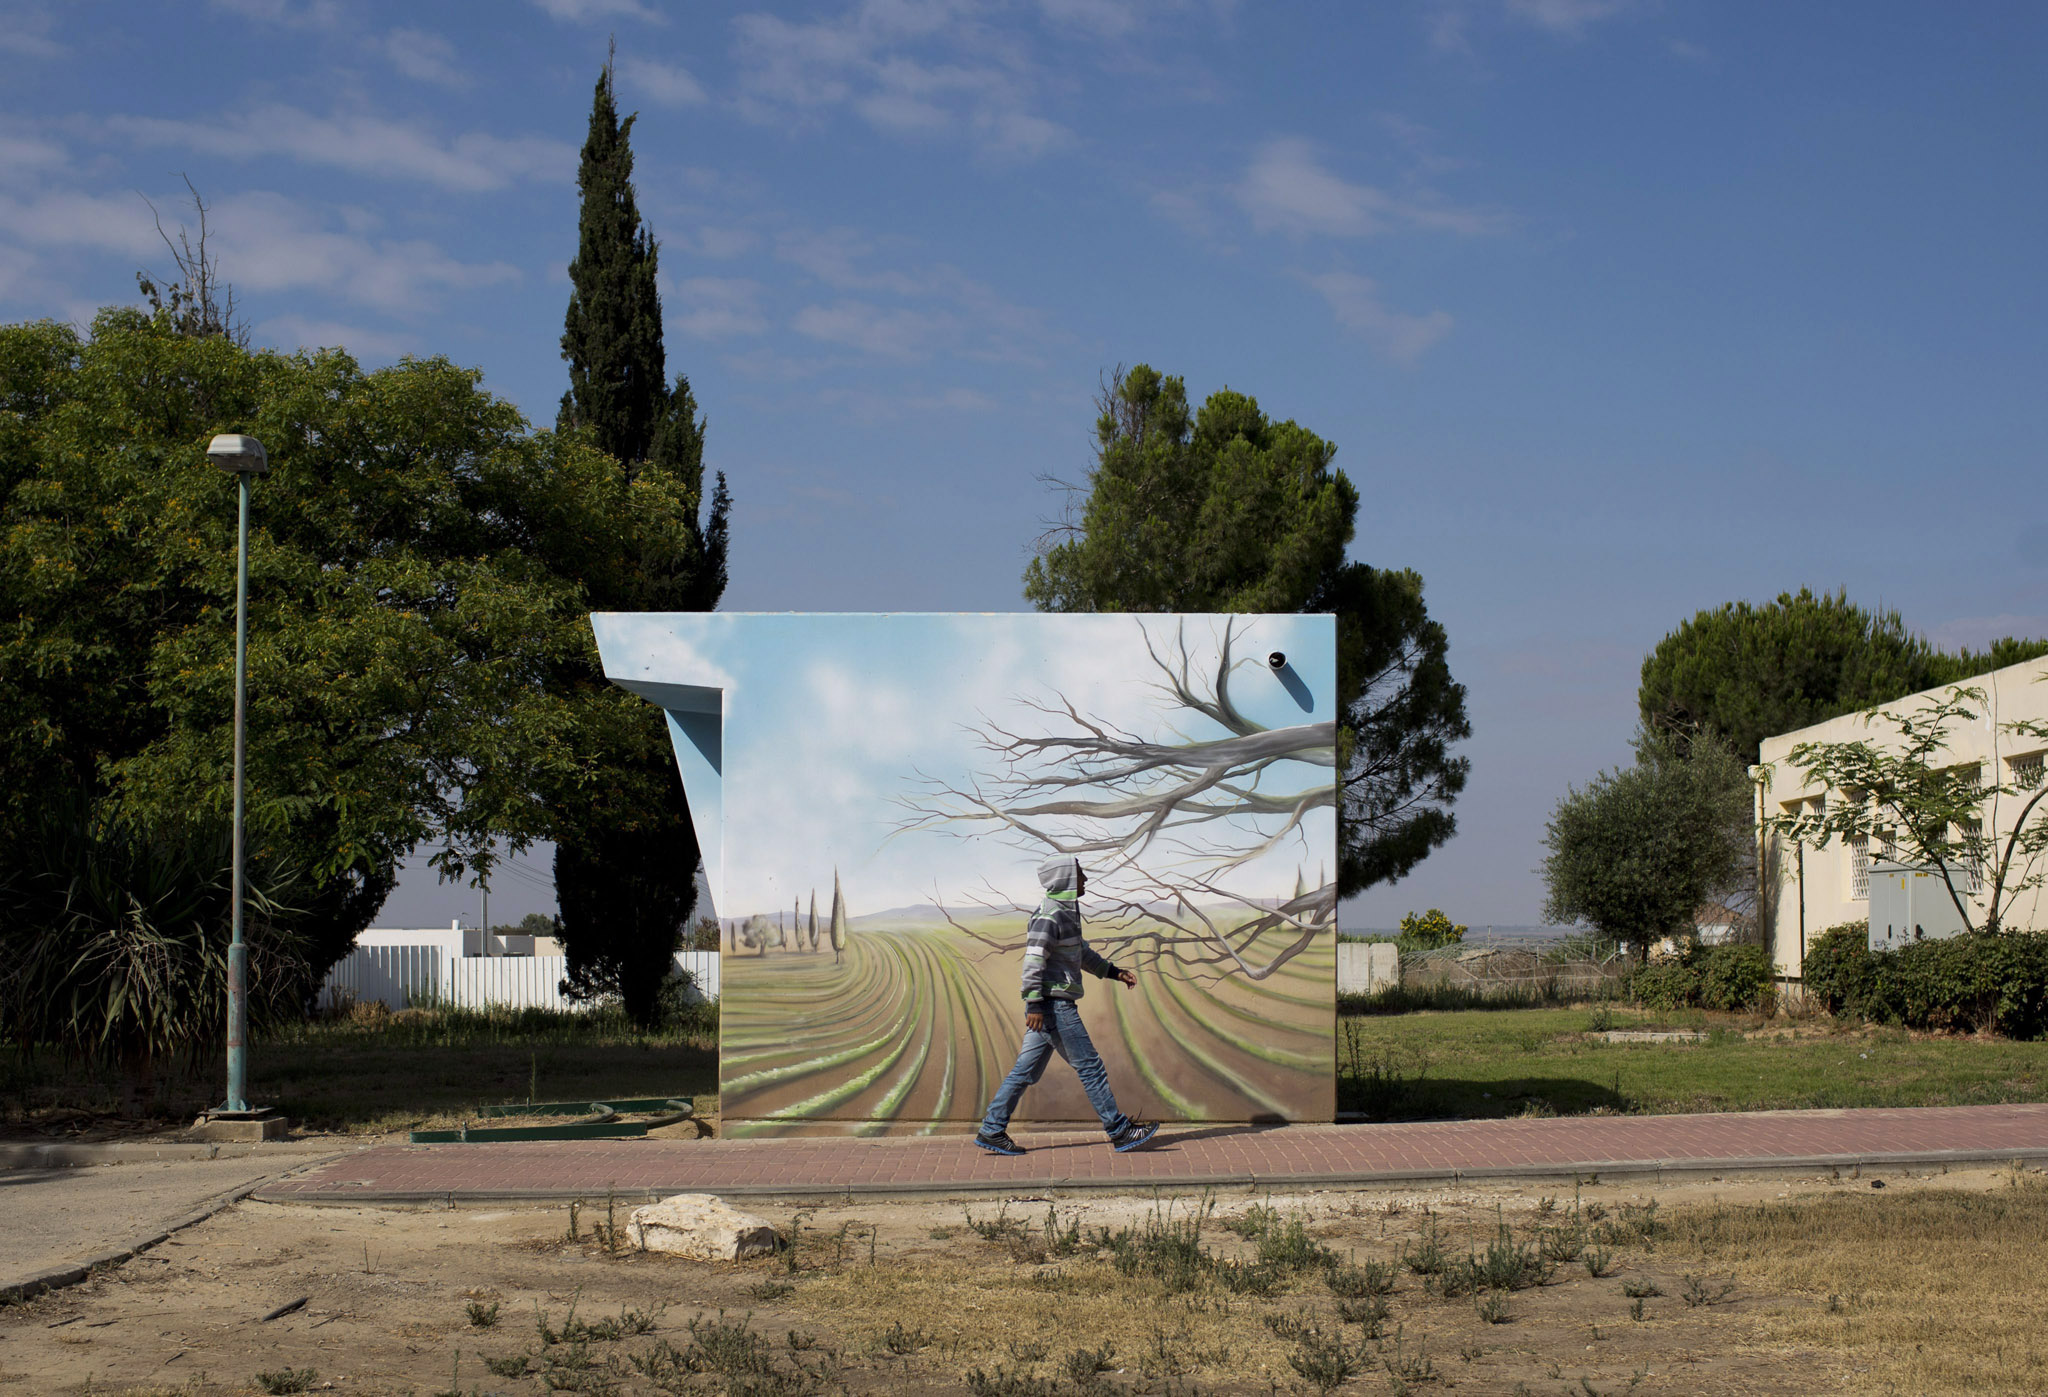 Israel marks one year since the 2014 Gaza conflict...epa04828836 (09/17) An Israeli man walks past a concrete protective shelter painted by Israeli artist Eliasaf Myara in the village of Shokeda, located a few kilometers from the border with the Gaza Strip, Israel, 25 June 2015. The Israeli Defense Ministry has placed hundreds of small concrete protective shelters to all towns located near the Gaza Strip to protect its citizens from incoming rockets. On 08 July 2015, Israel will mark one year since the 2014 IsraelñGaza conflict, also known as Operation Protective Edge.  EPA/ABIR SULTAN PLEASE REFER TO THE ADVISORY NOTICE (epa04828827) FOR FULL PACKAGE TEXT